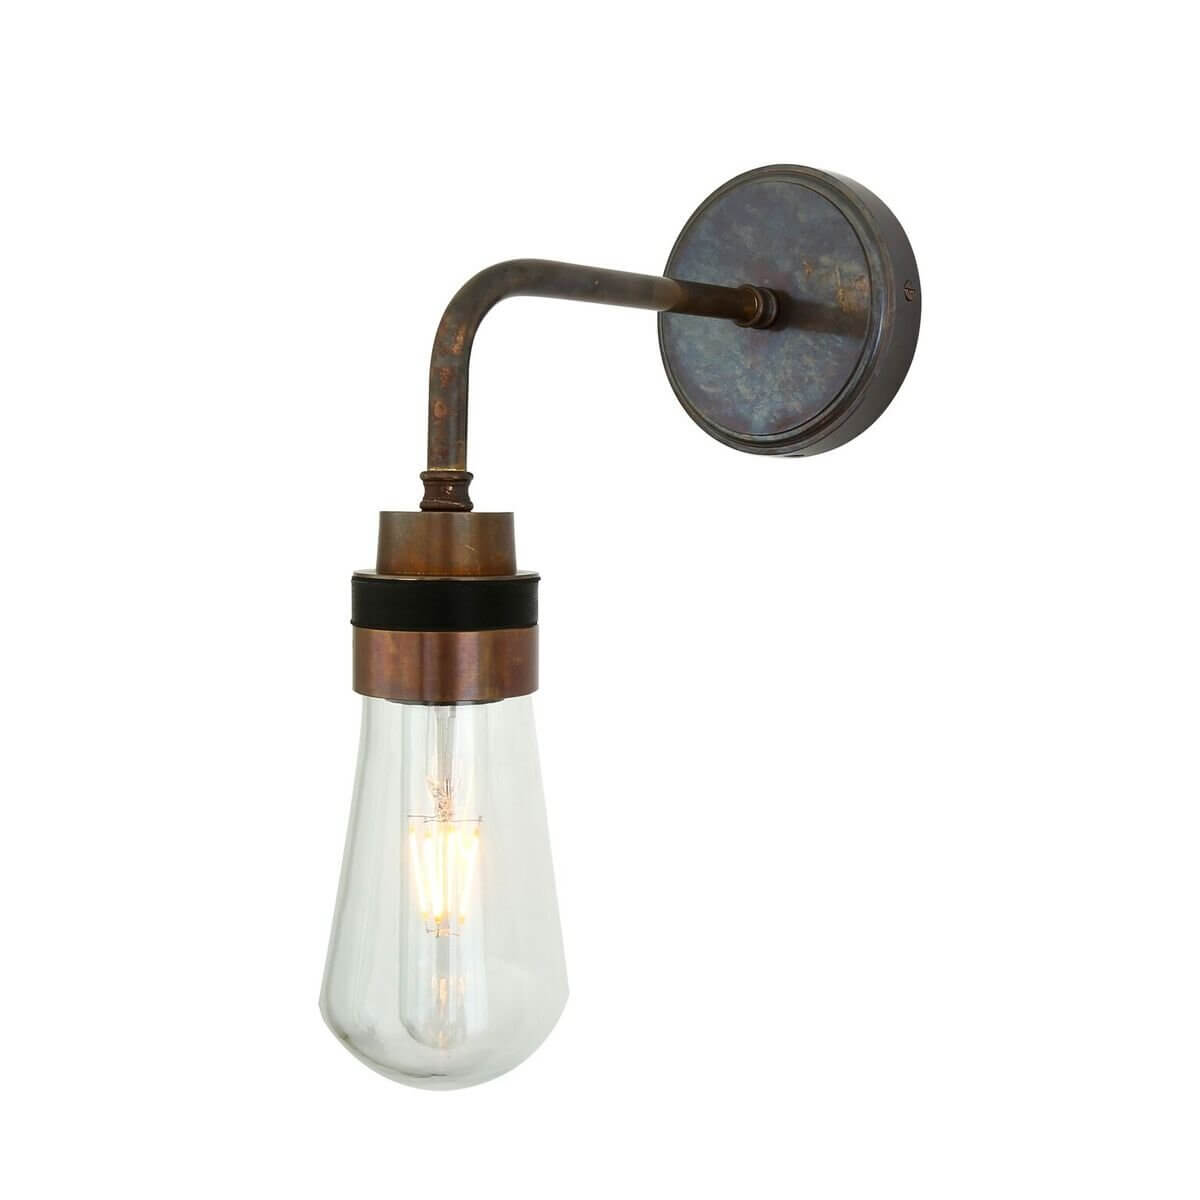 Industrial Wall Light in Antique Brass